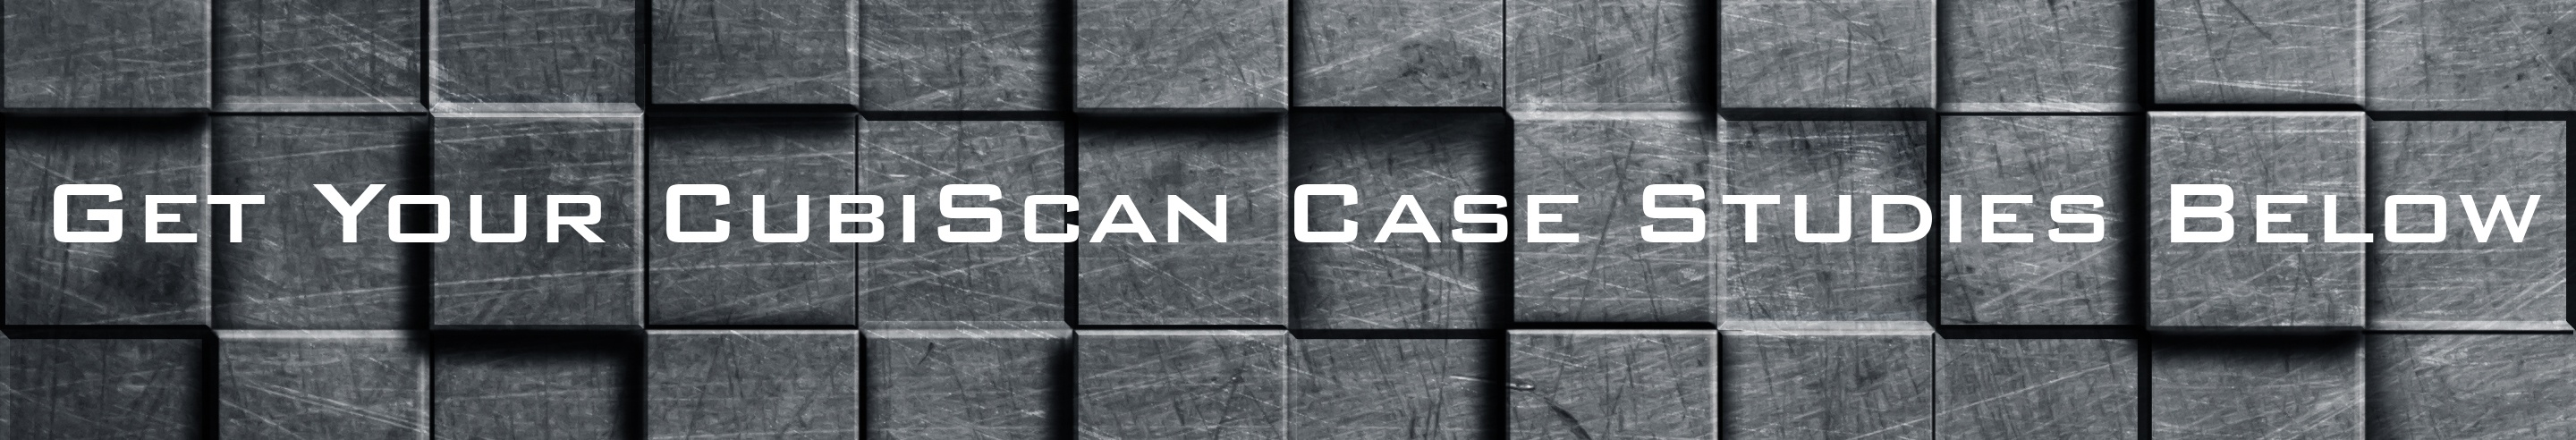 CubiScan, dimensioning and weighing systems, Case Studies